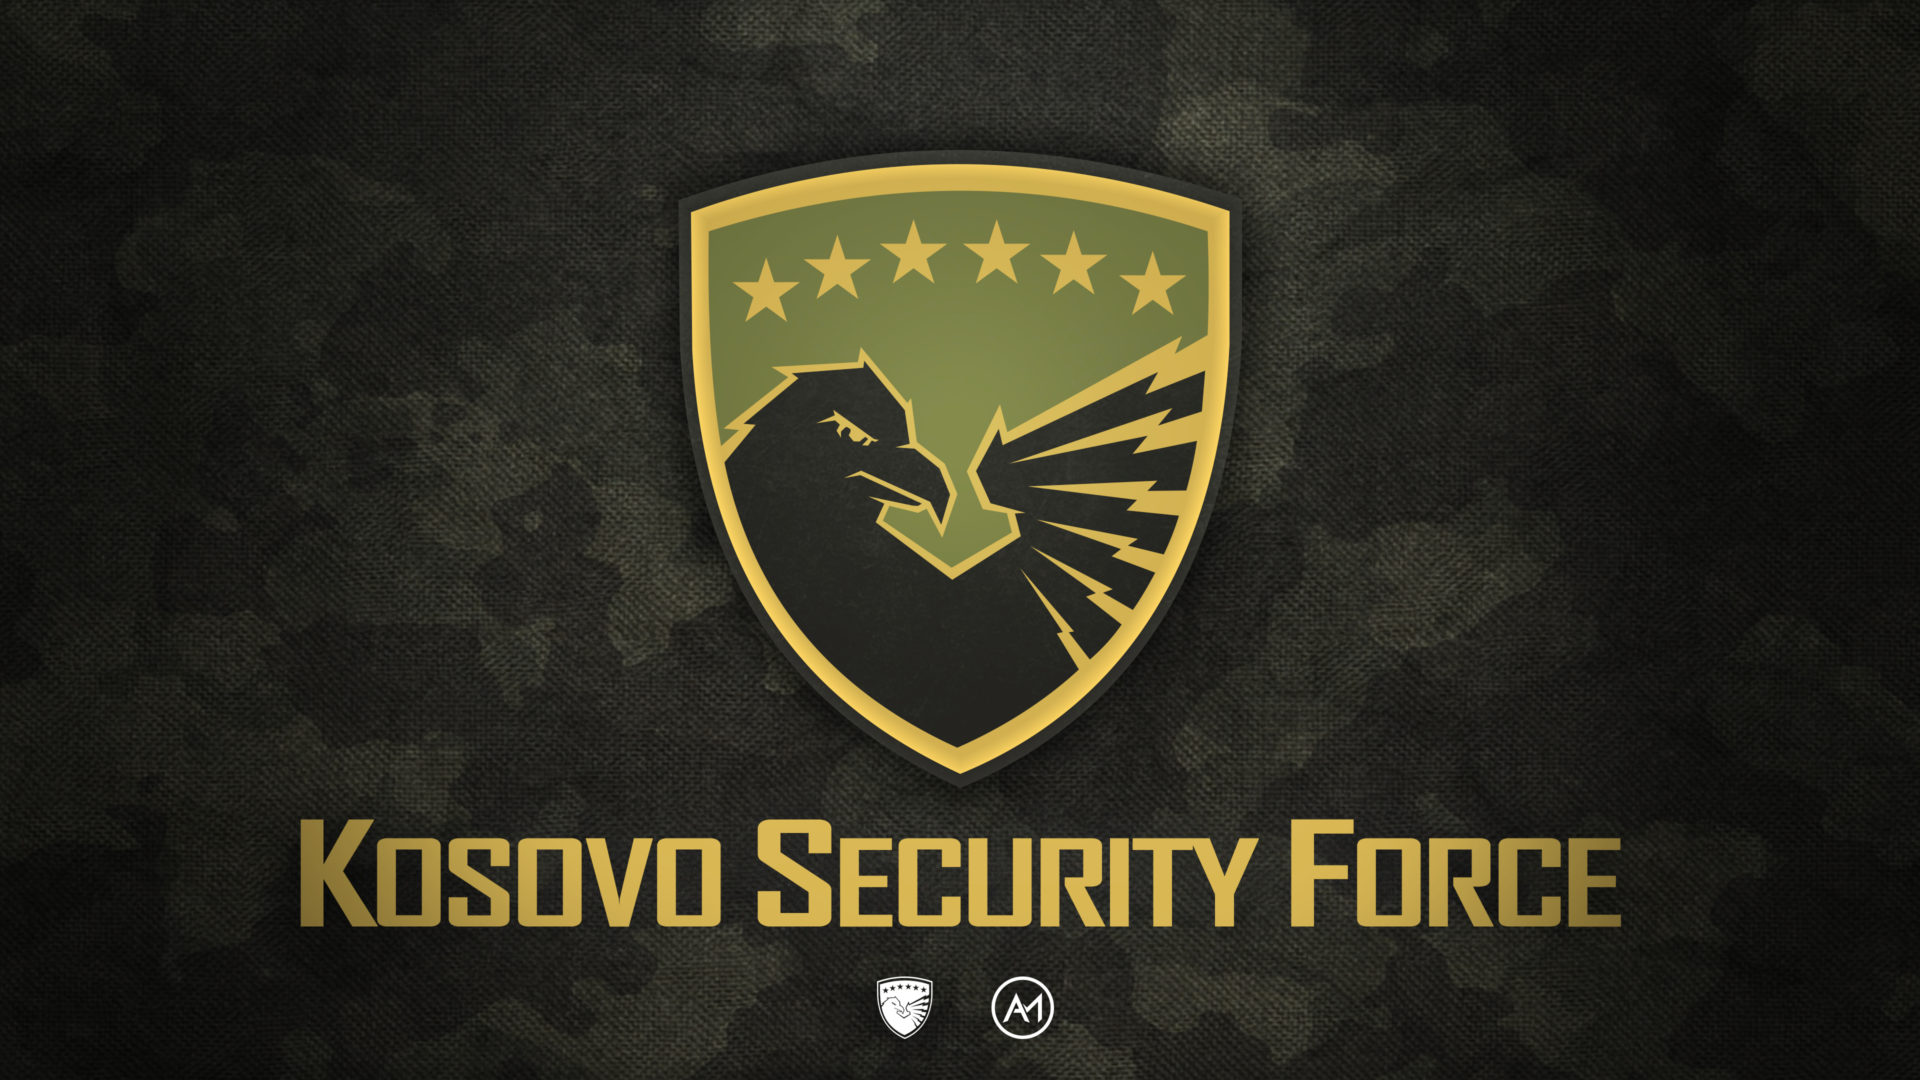 KOSOVO SECURITY FORCE WALLPAPER